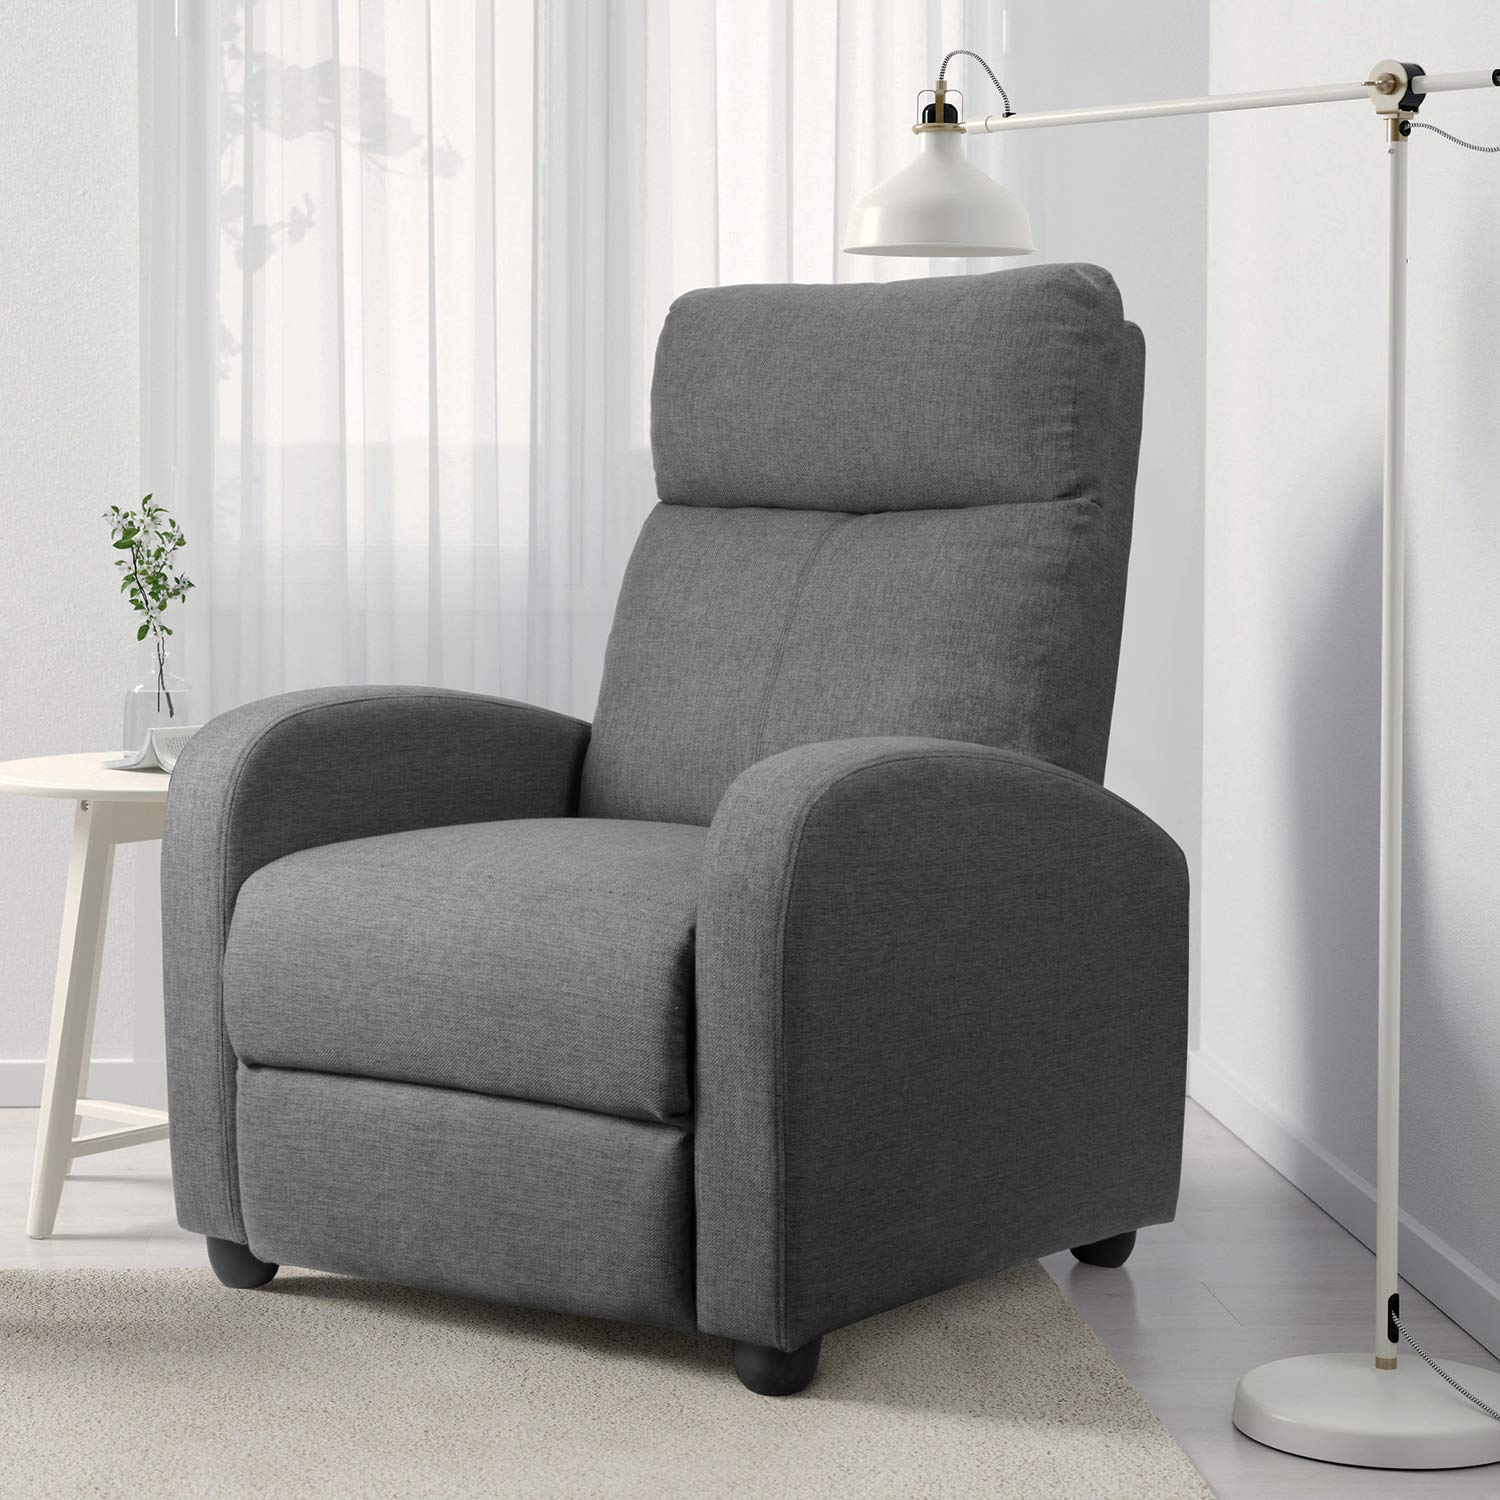 Roxy Grey Lounge Chair and Ottoman Set